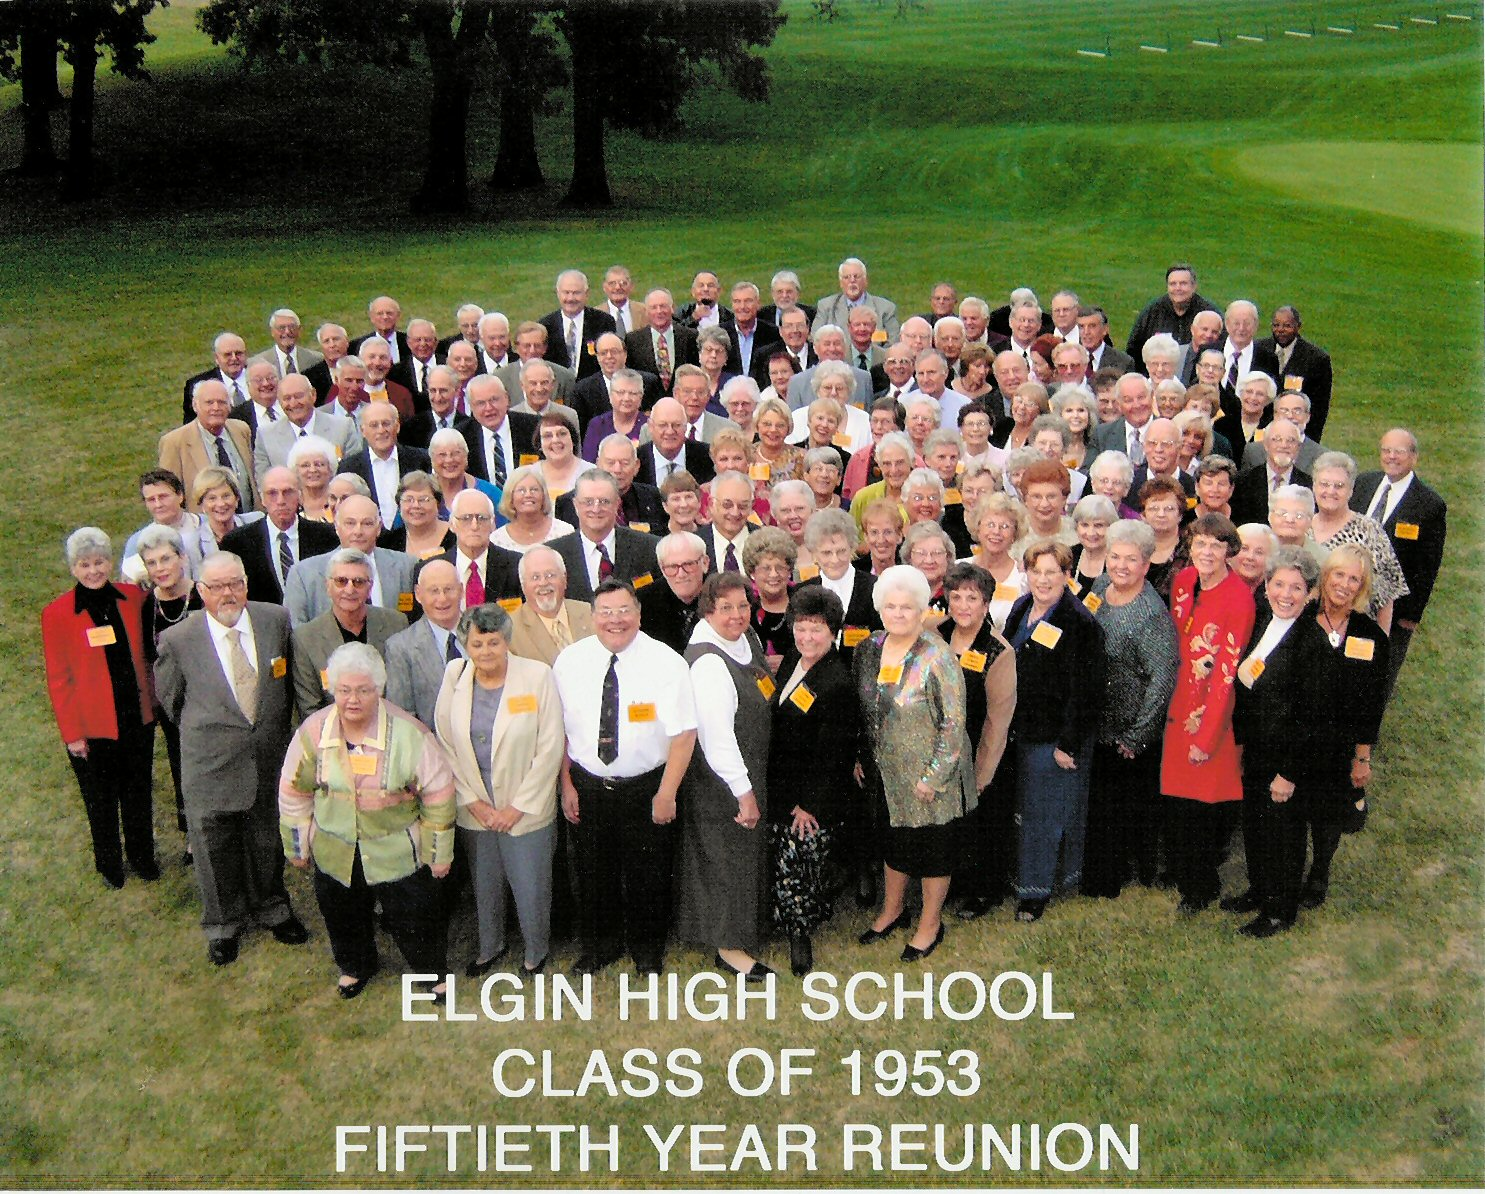 50th high school class reunion taken at the 50th reunion of the